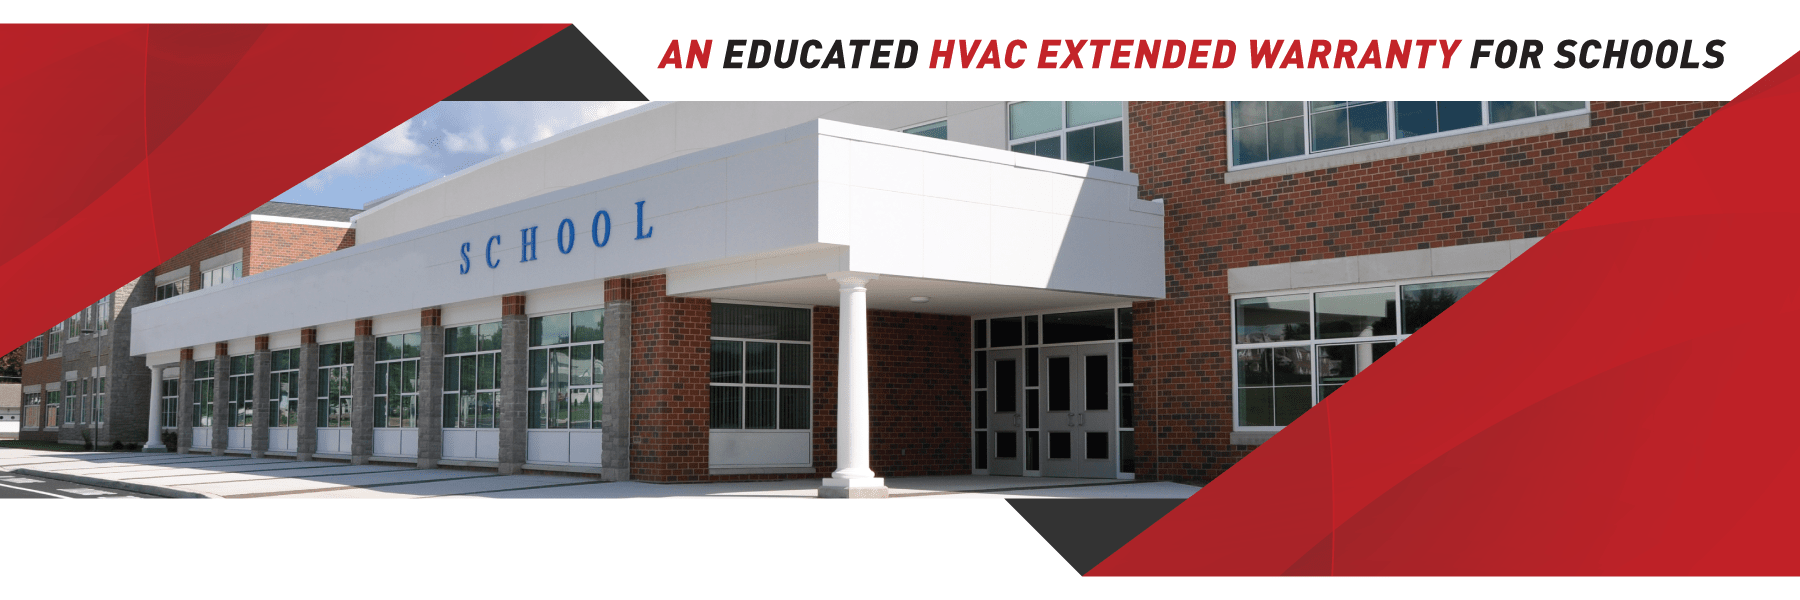 An Educated HVAC Extended Warranty for Schools